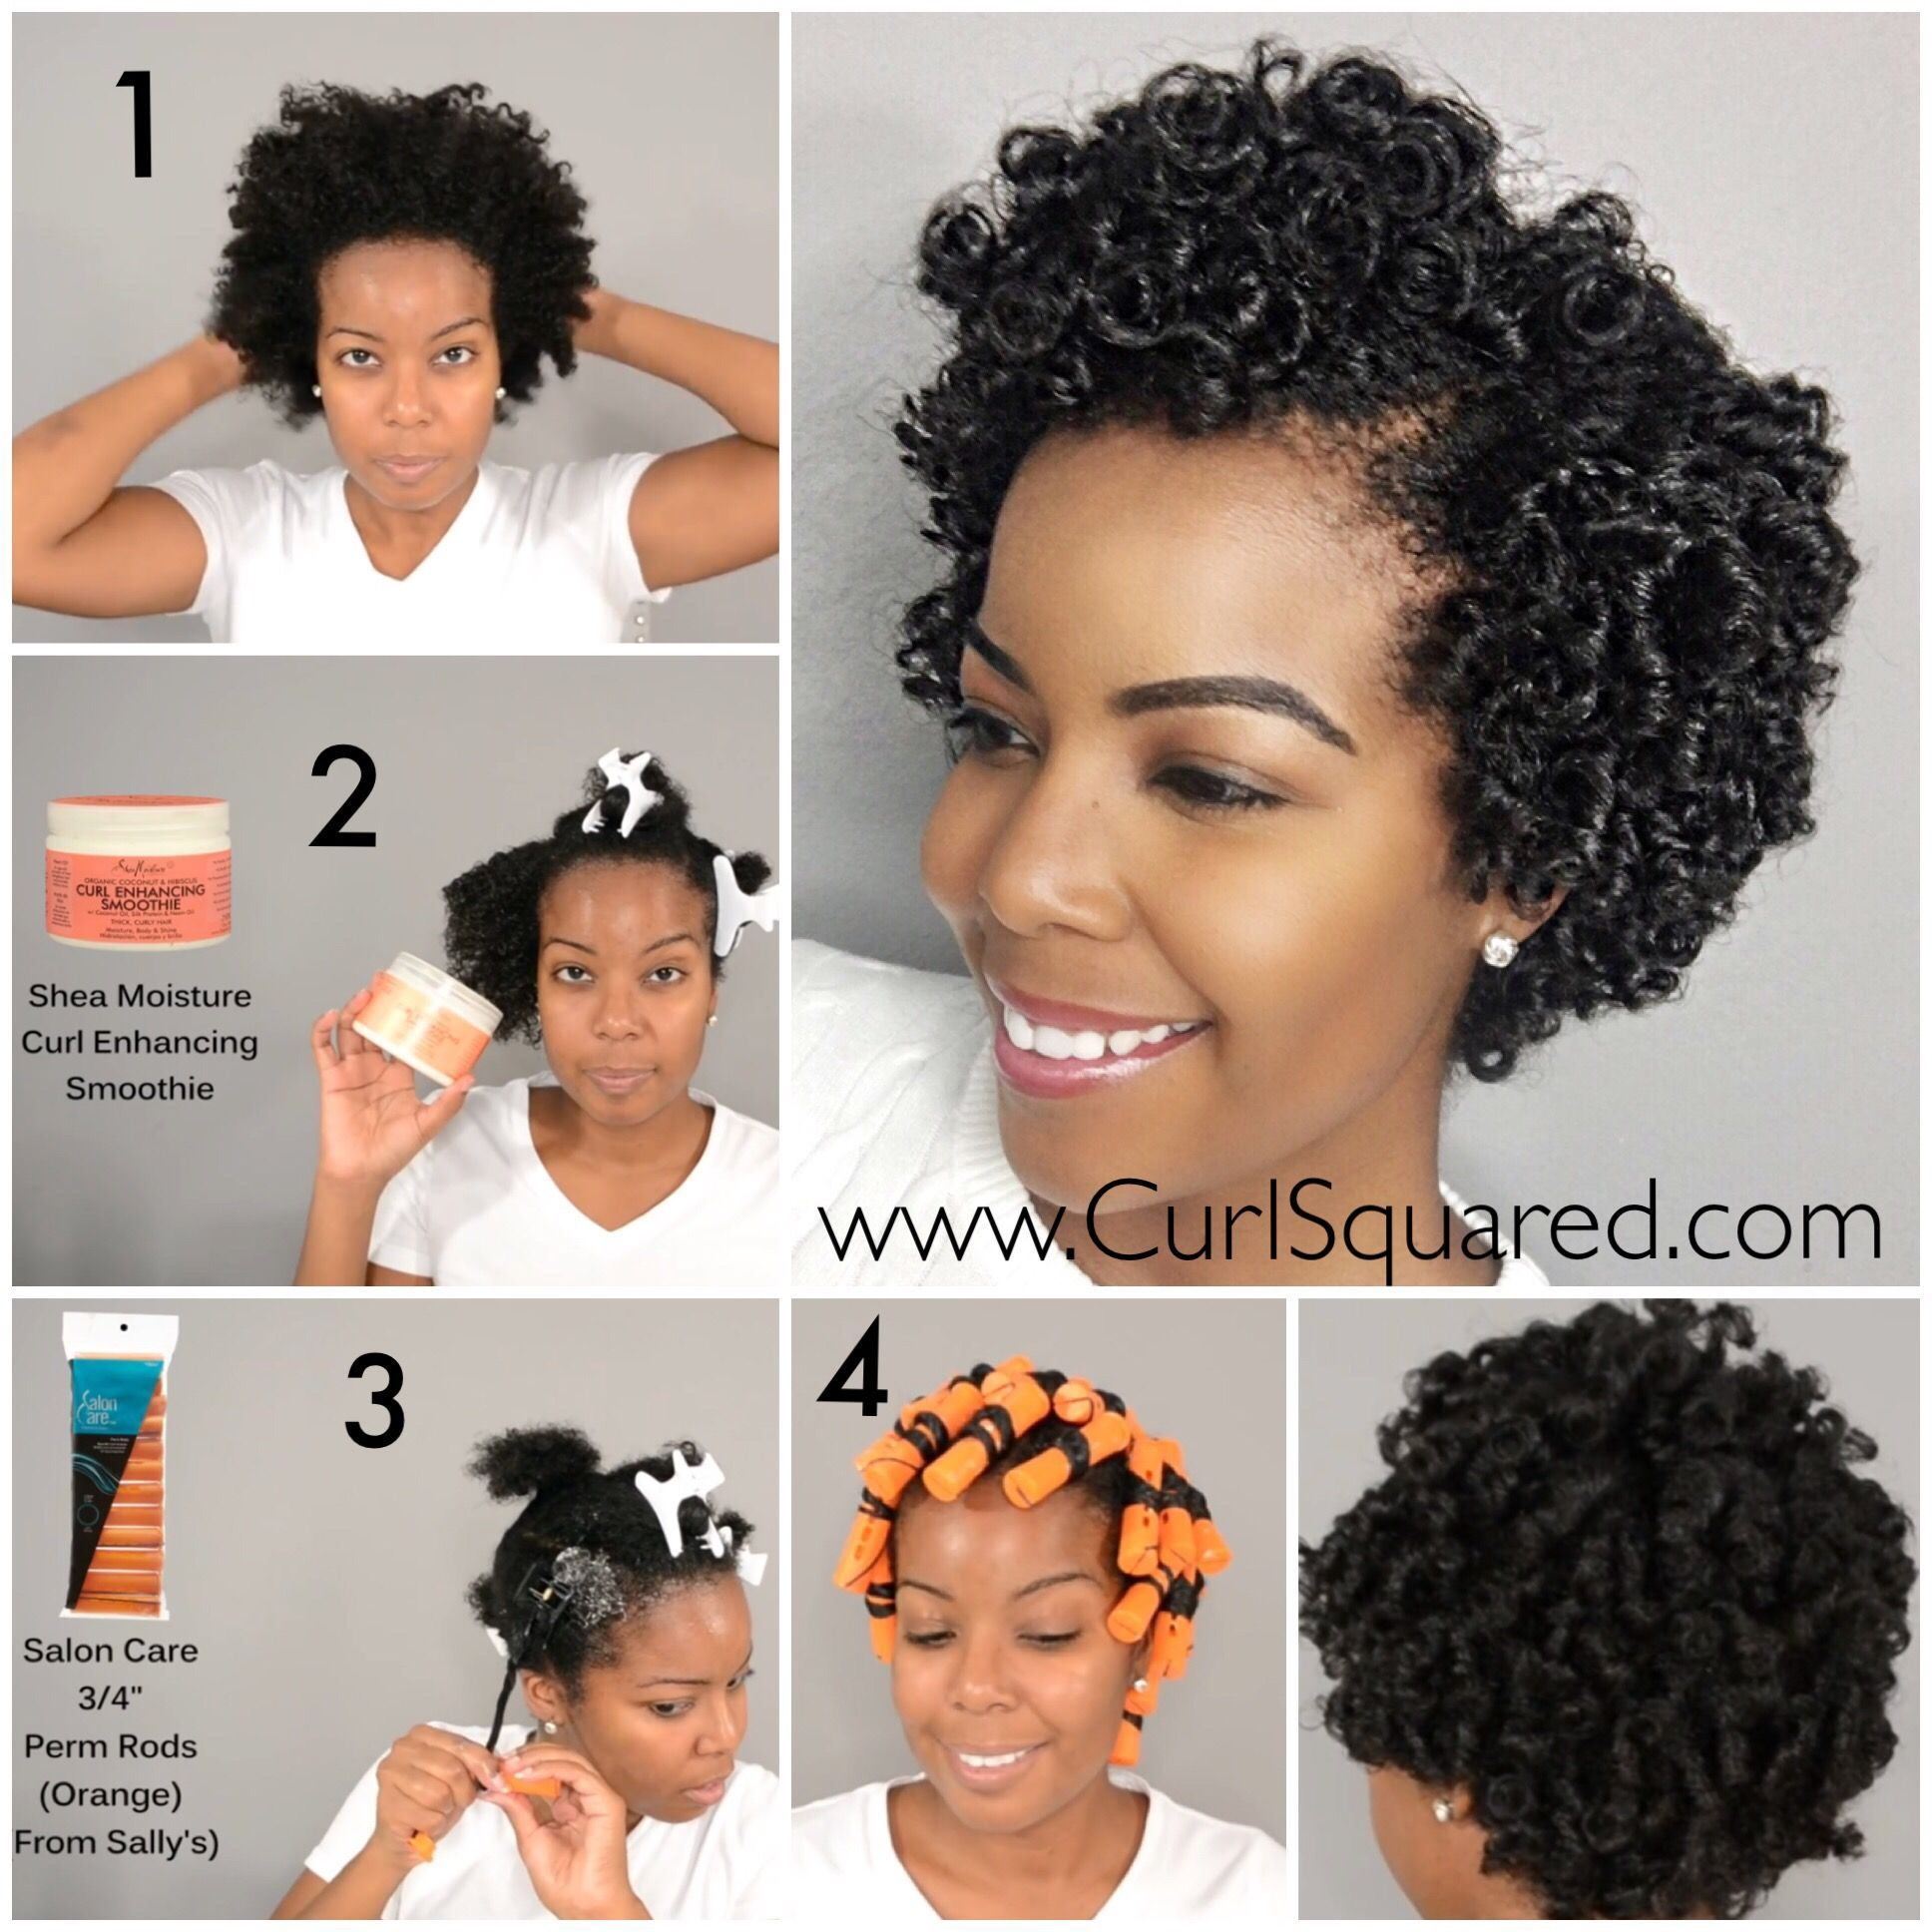 Defined Perm Rod Set On Short Curly Natural Hair Style Haircareset Natural Hair Perm Rods Hair Styles Natural Hair Twists